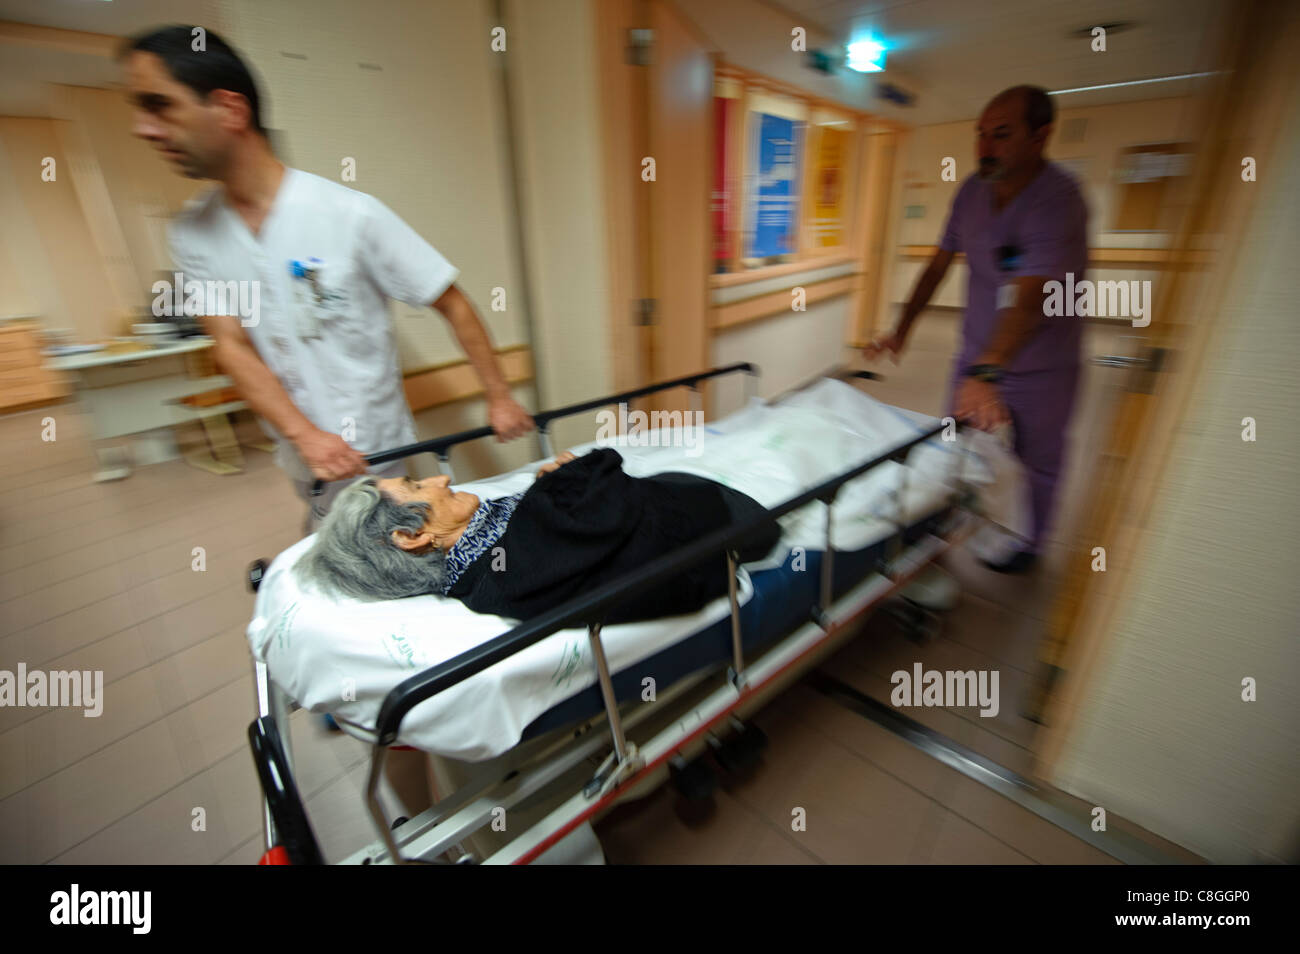 Motion blurred dynamic photo of healthcare professionals moving an old woman on a gurney in an hospital - Stock Image